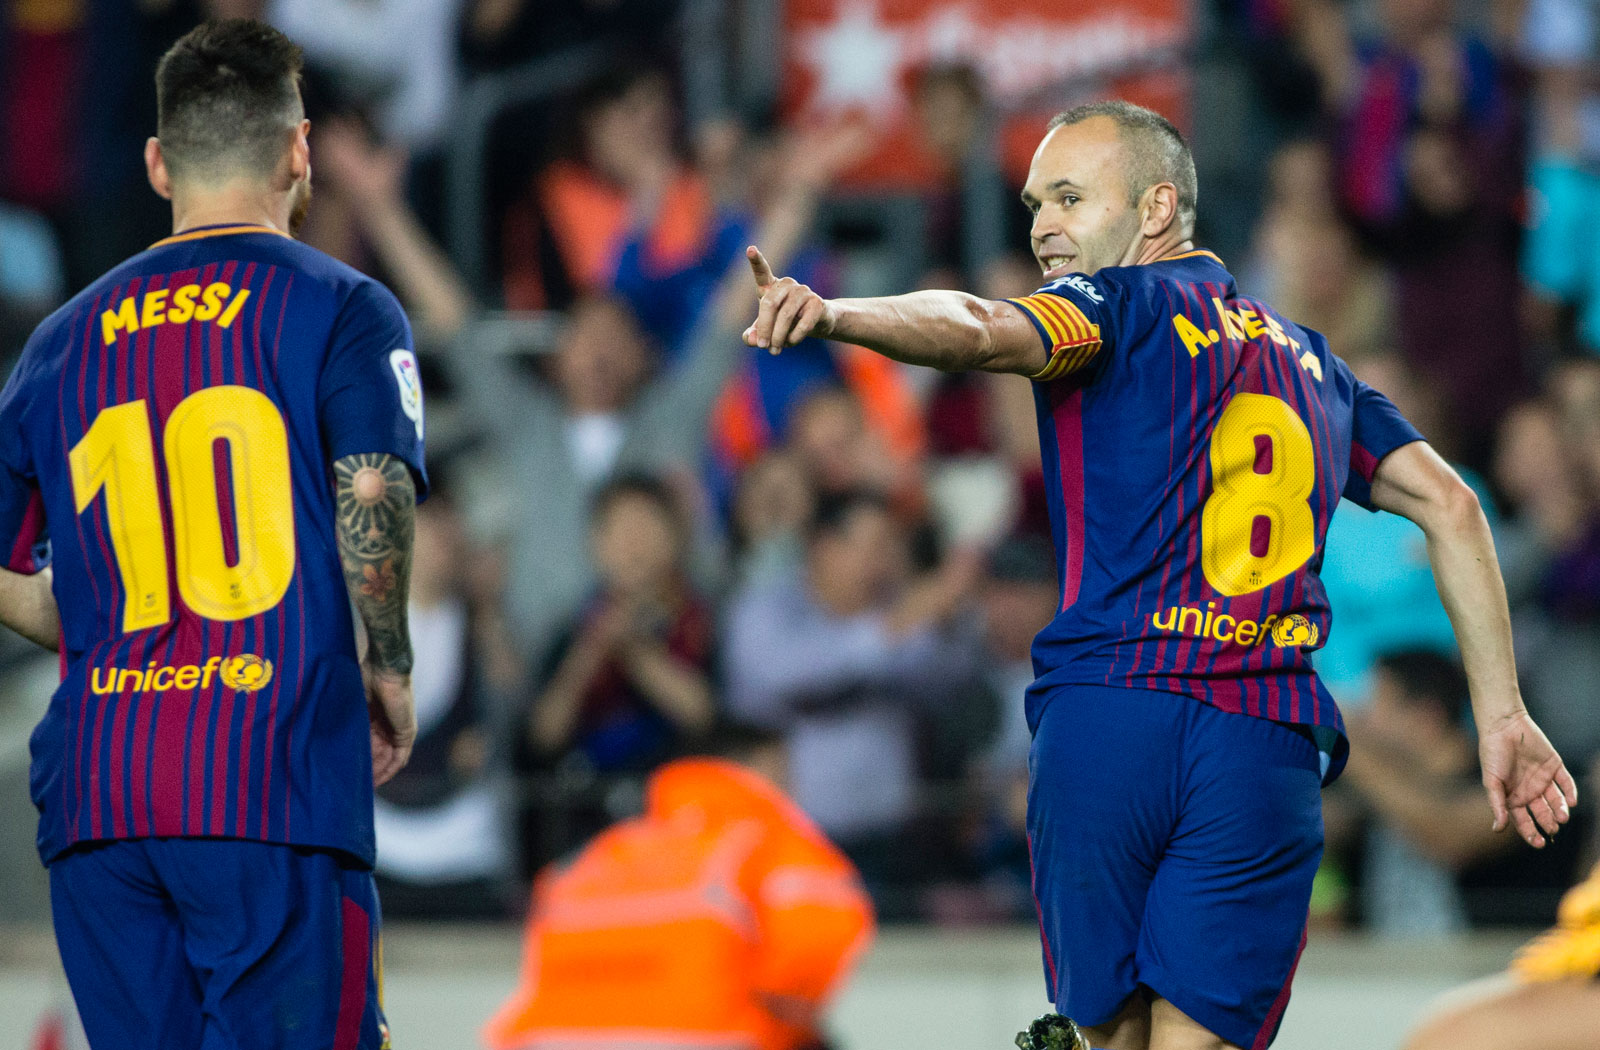 Andres Iniesta is set to end his Barcelona career